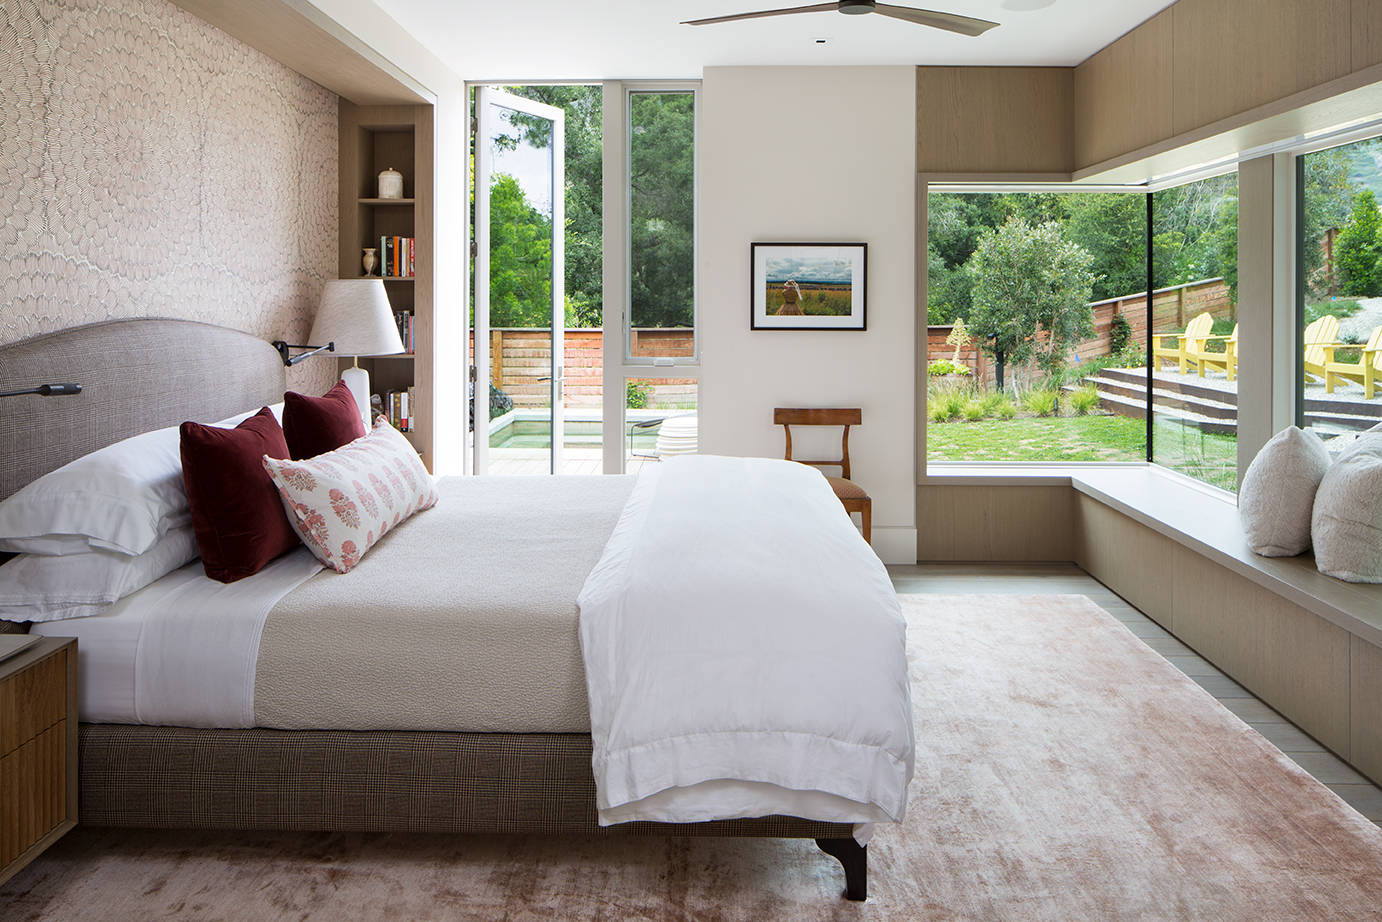 DunsmuirInstituteArchitects_Mandeville_MeghanBobPhoto_MasterBedroomSideView_WEB.jpg